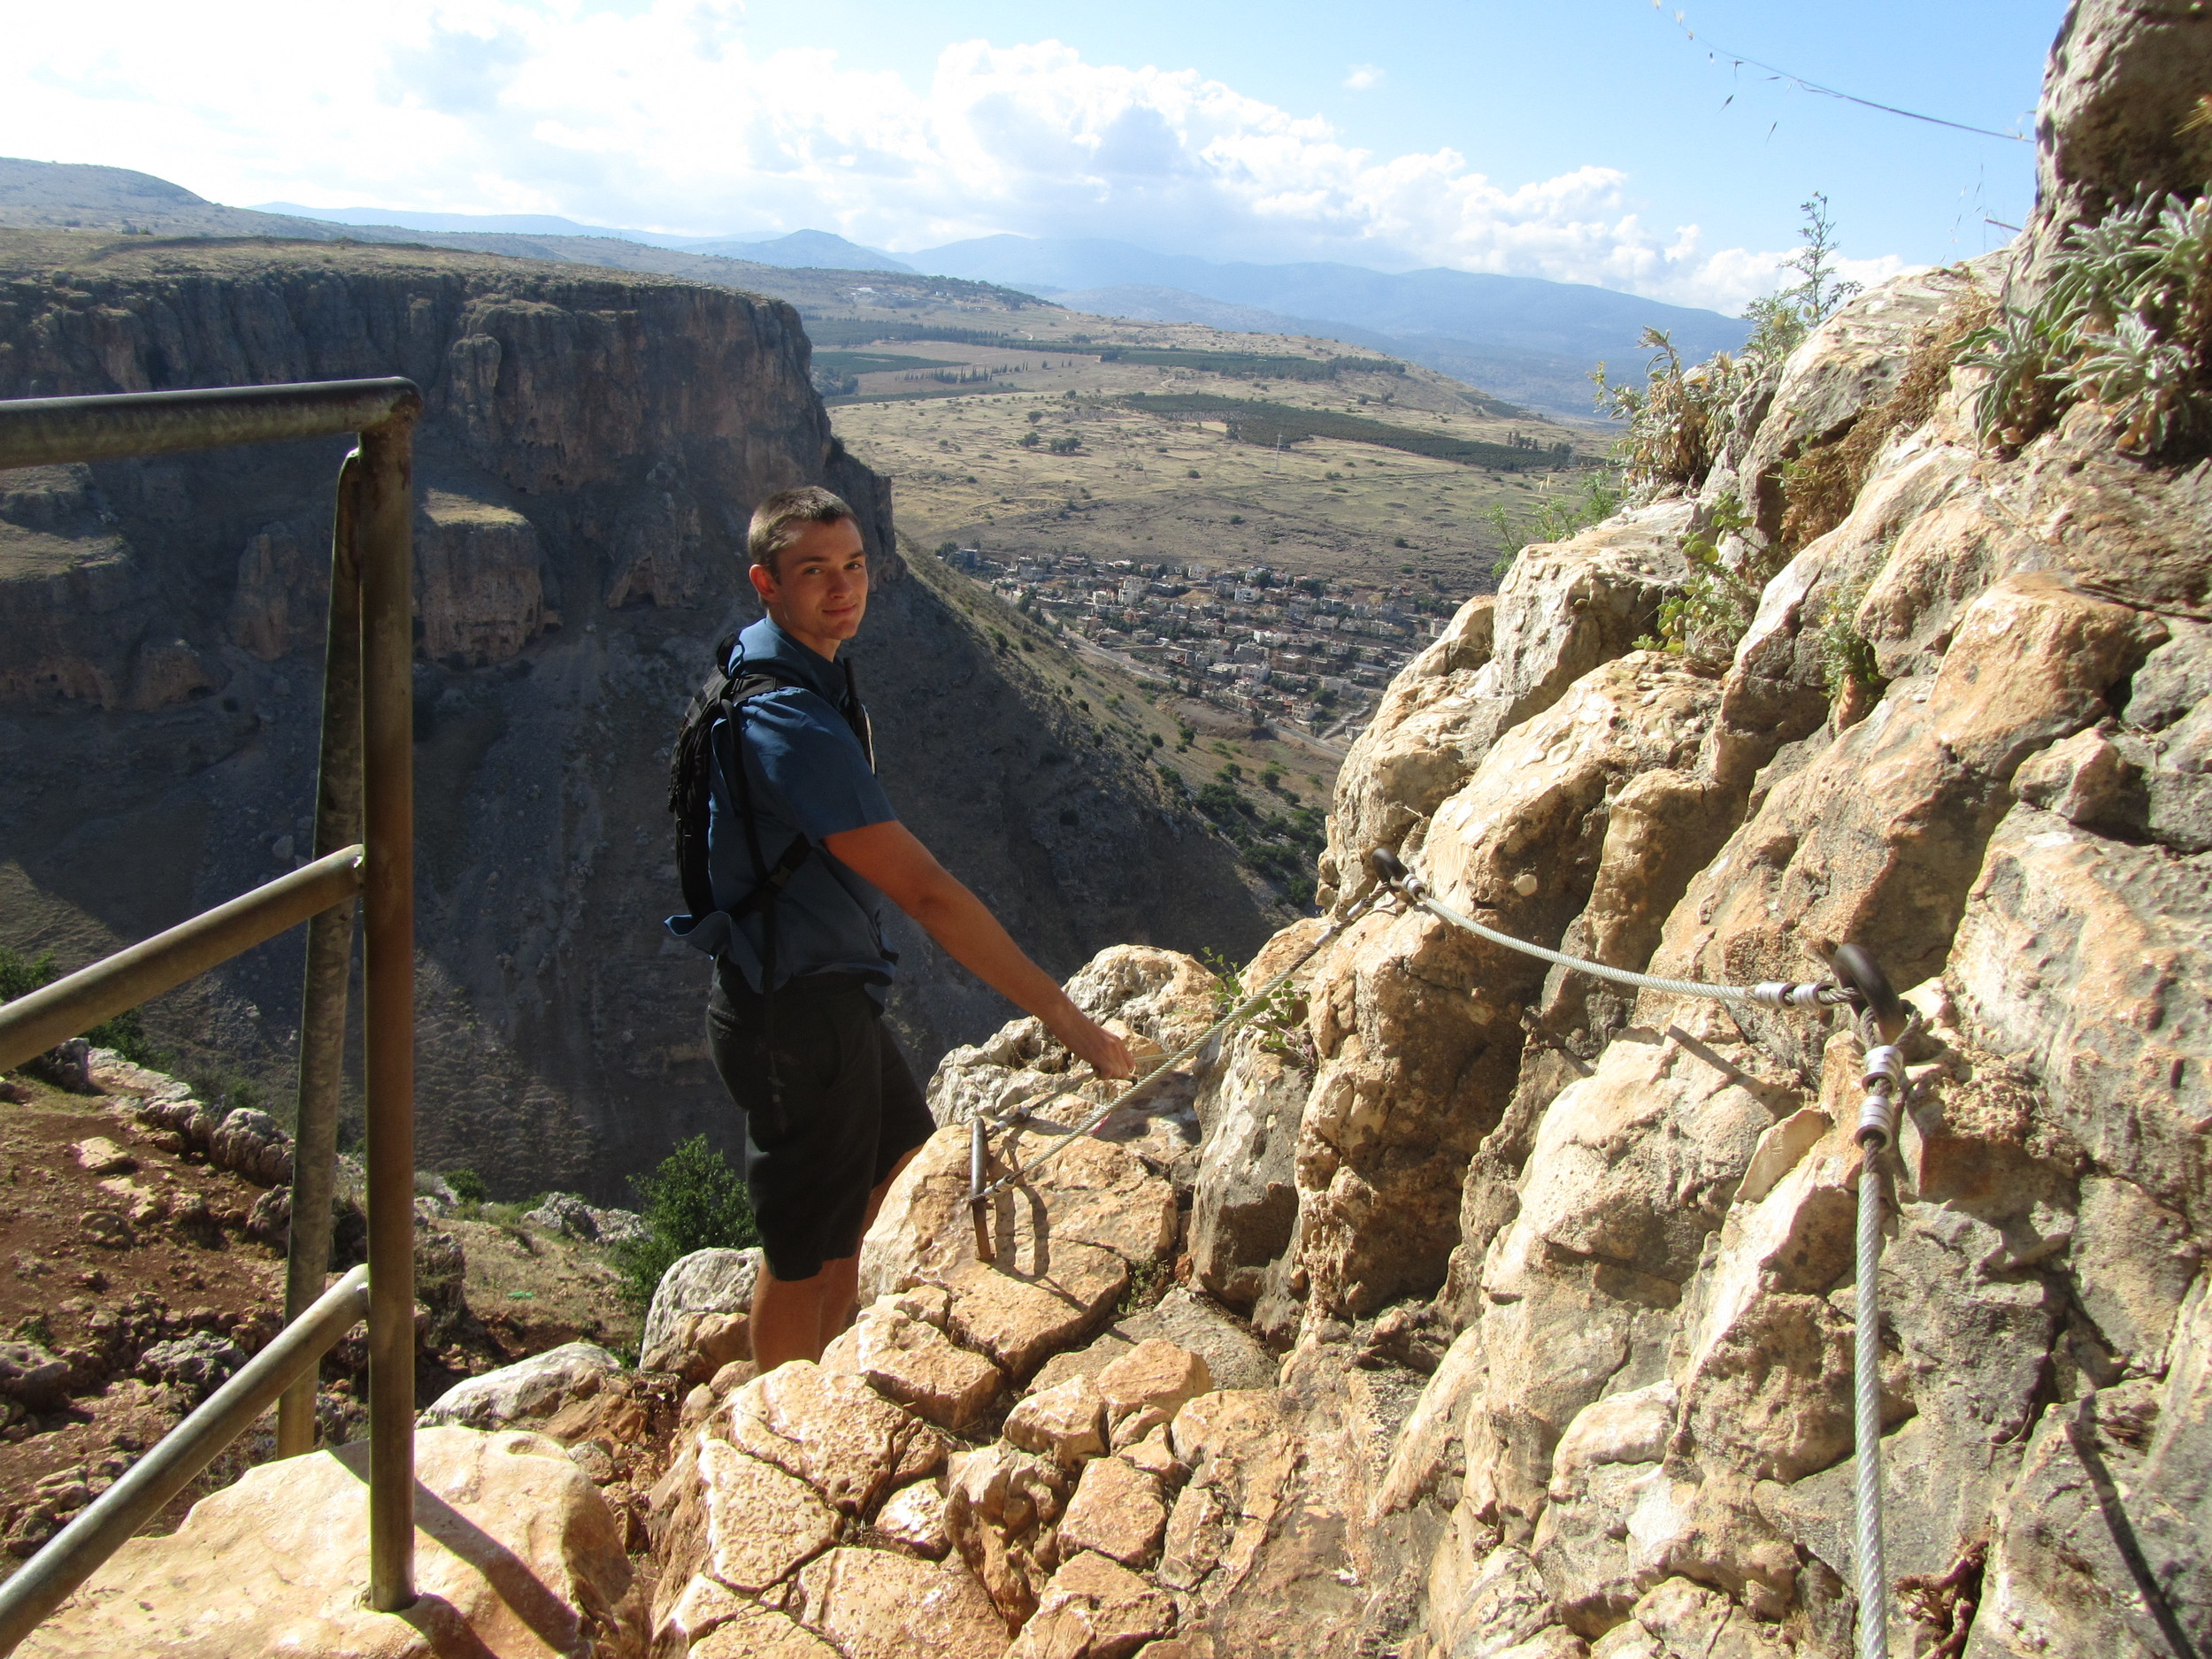 Luke climbing the Cliffs of Arbel to the ancient caves